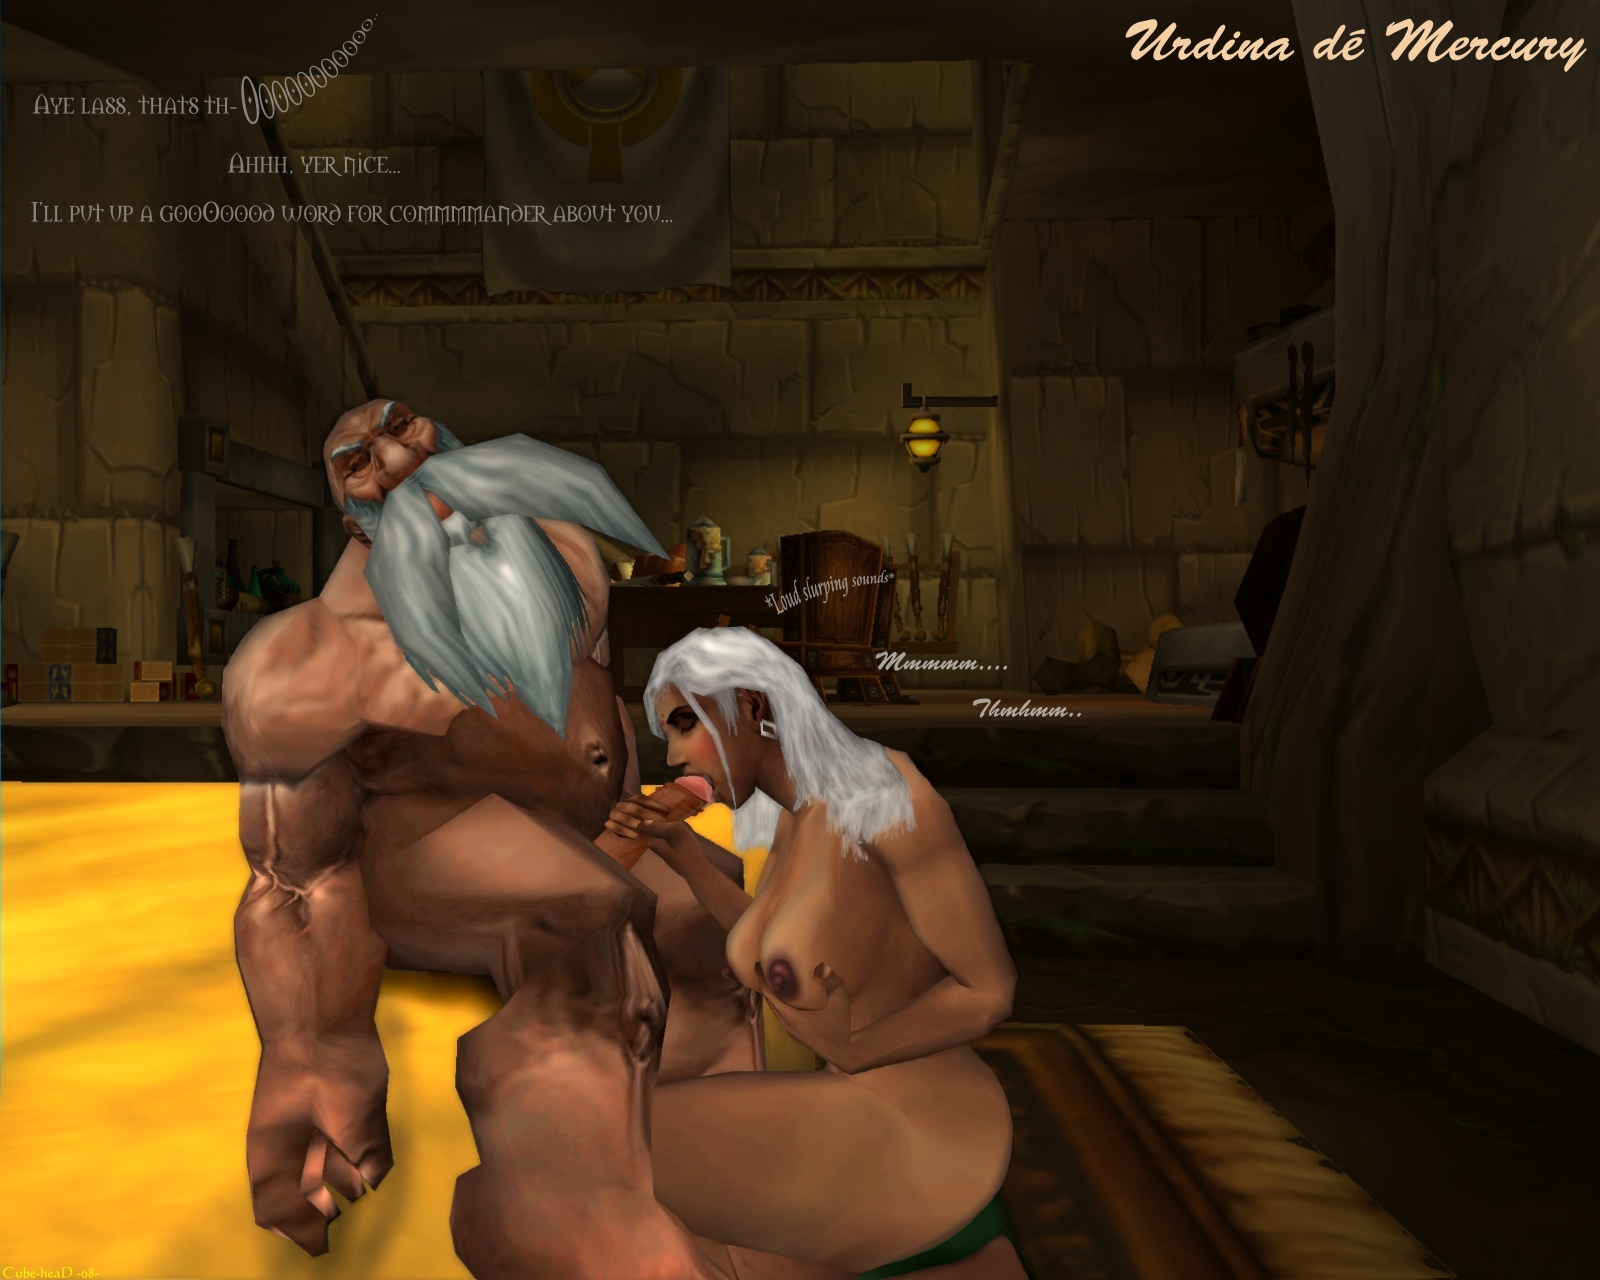 Warcraft dwarf porn story anime woman